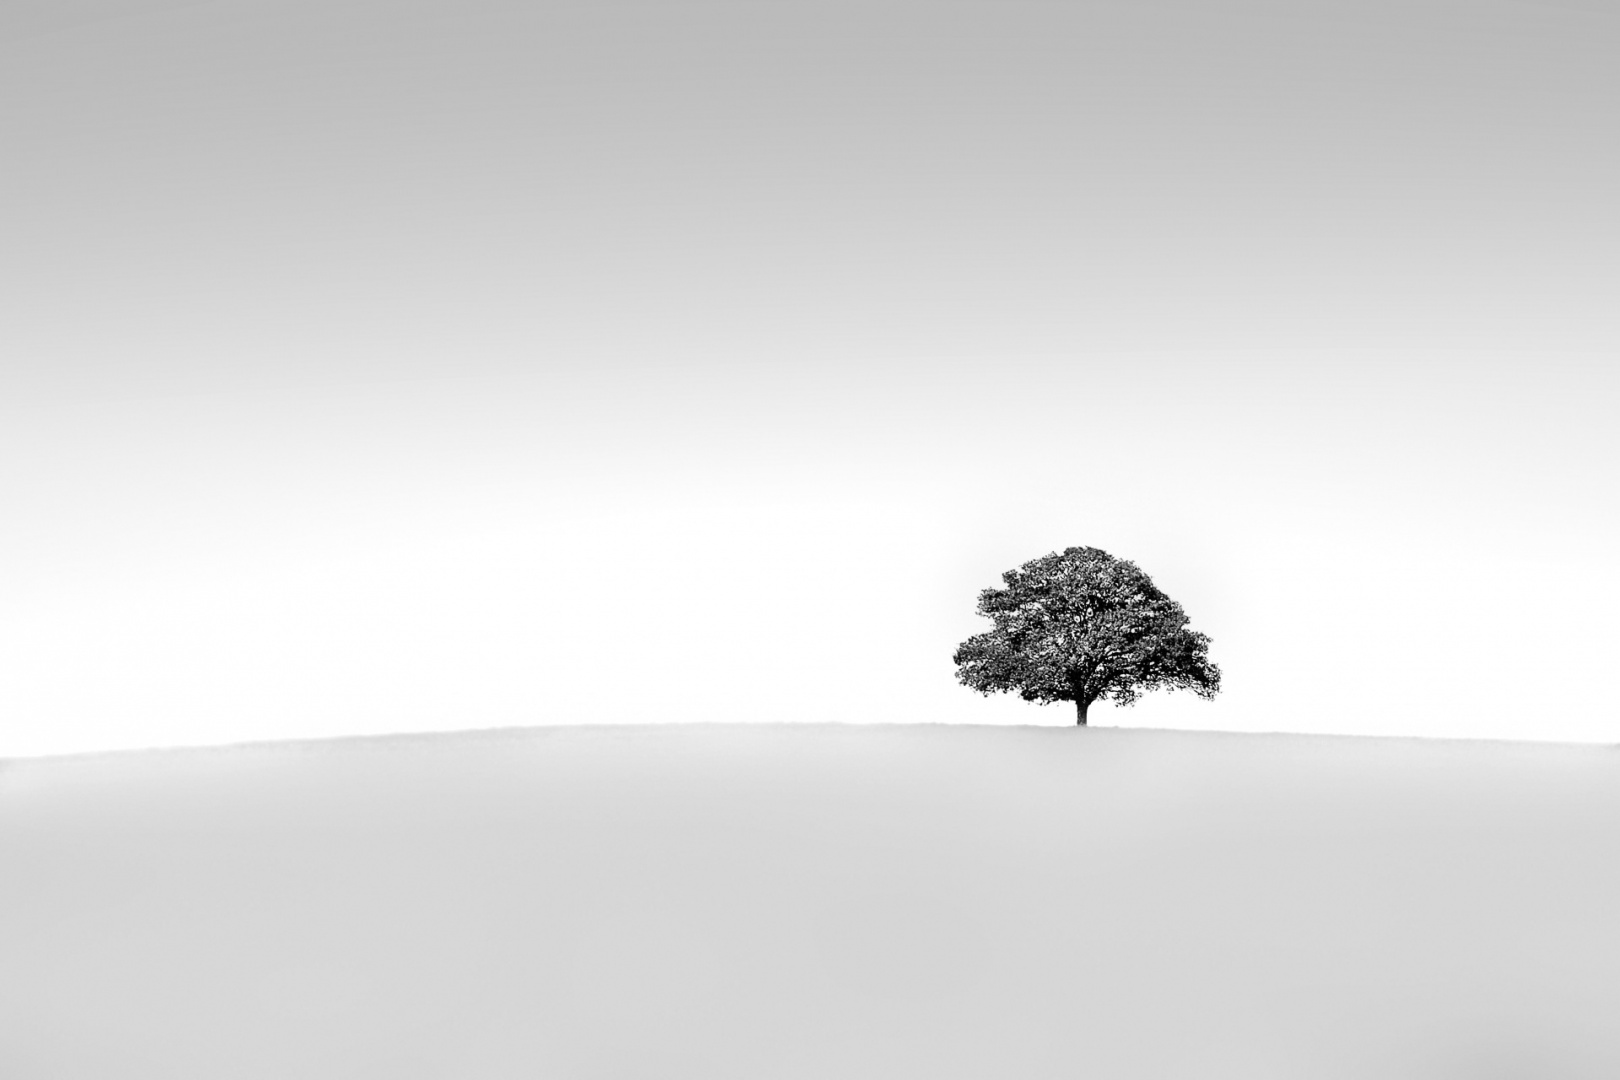 © Jose Antoine Costa  - The Tree in negative space.